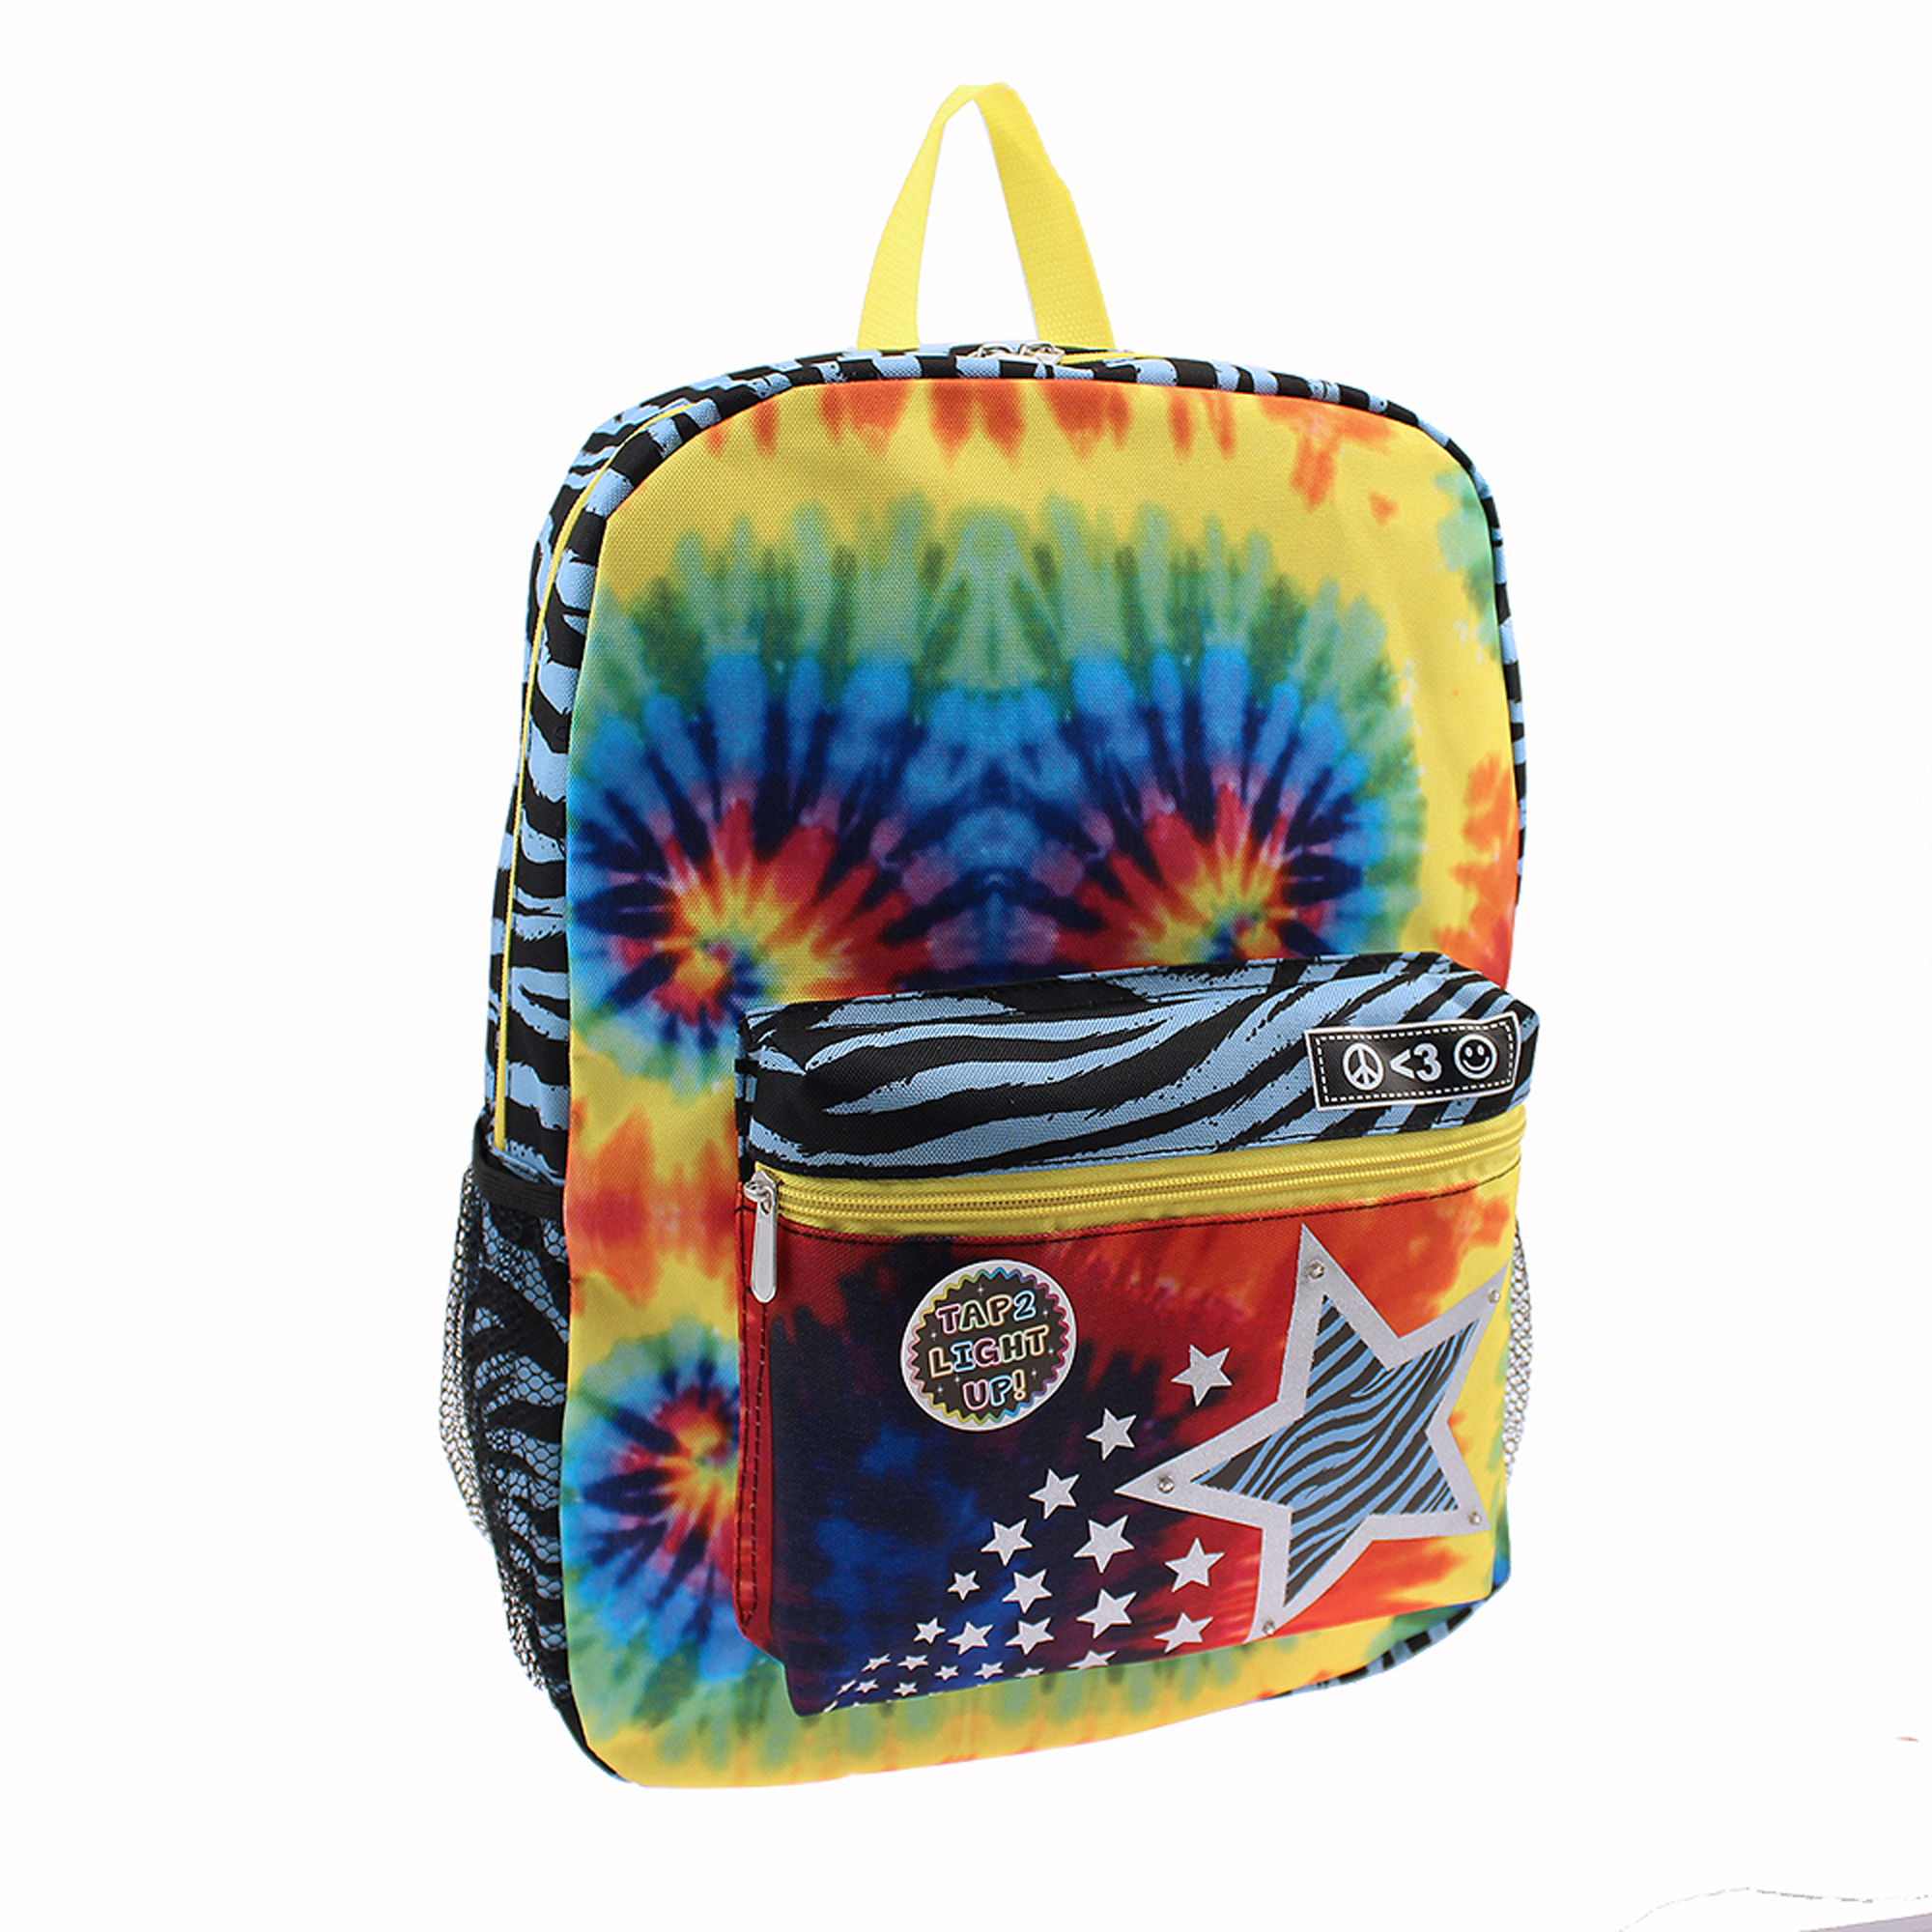 "Star Printed 16"" Light Up Backpack"